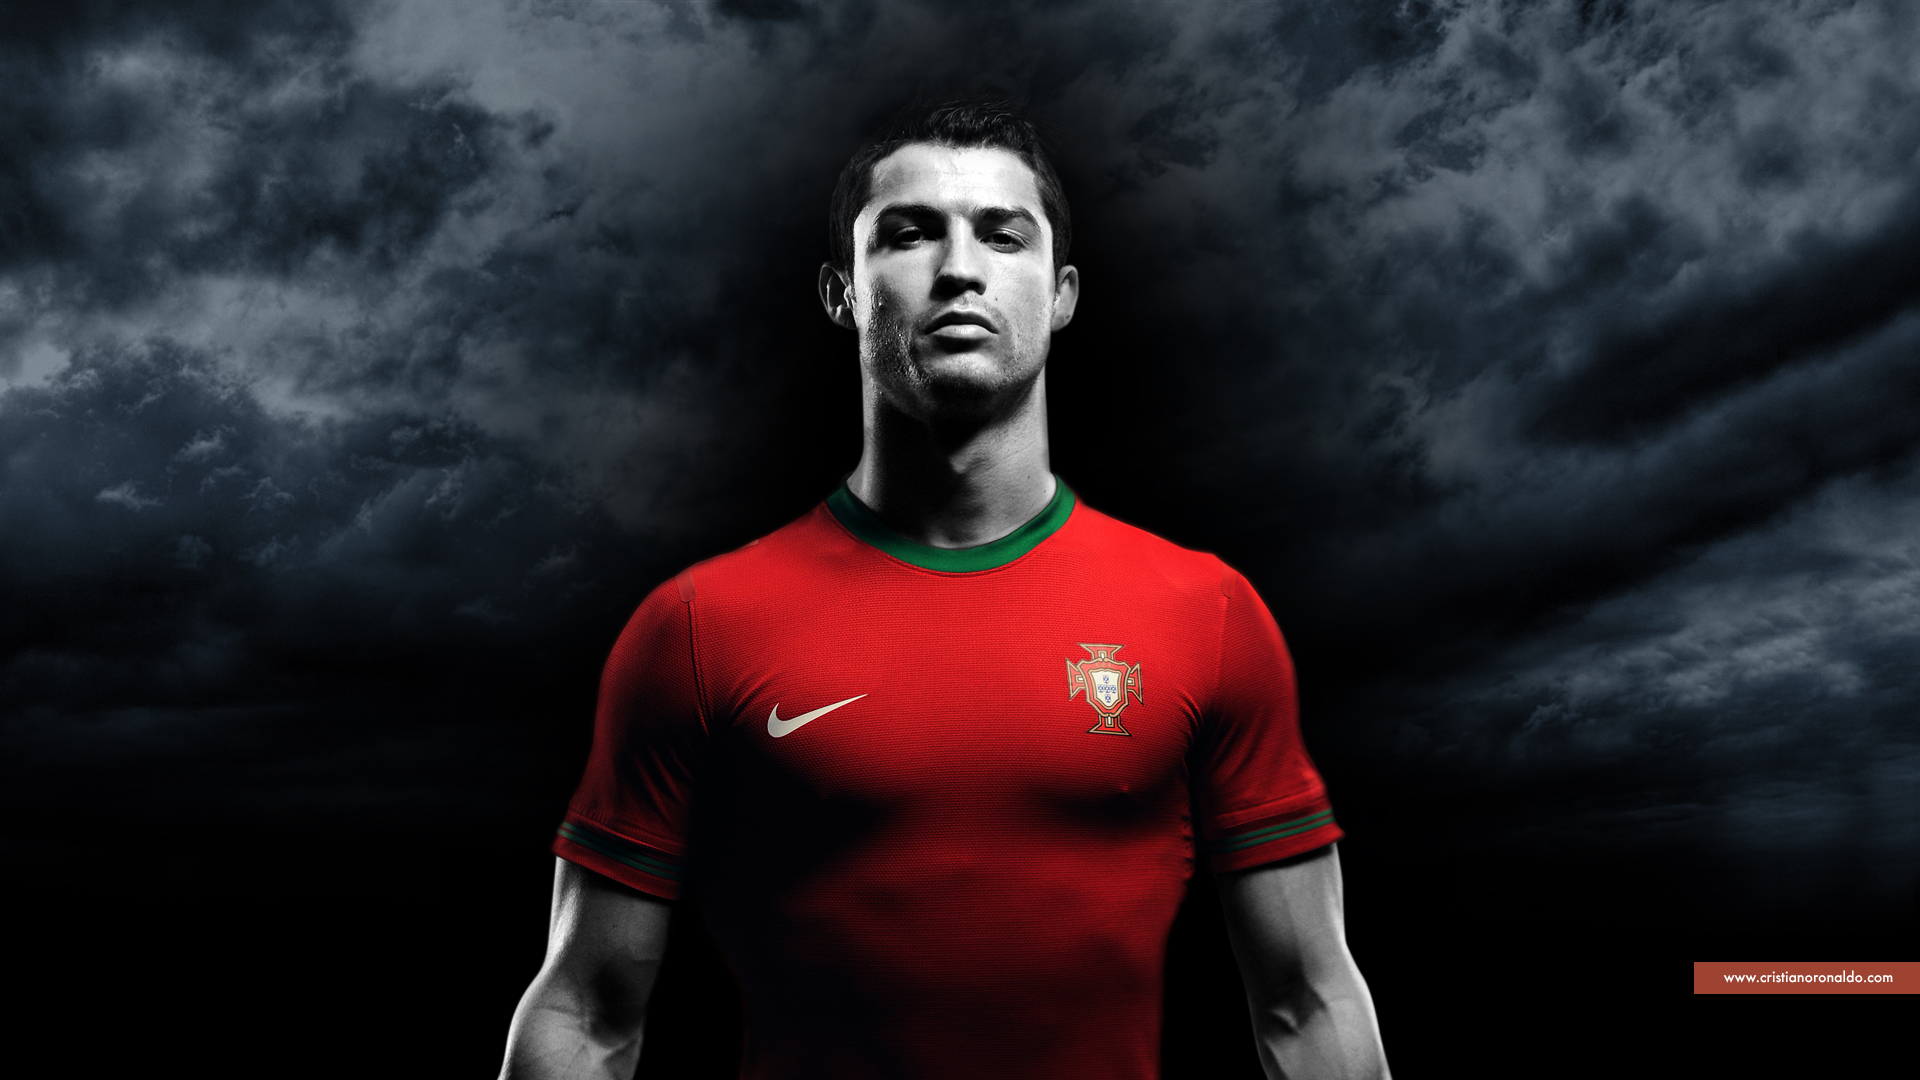 Cr7 Wallpaper Hd: CR7 Wallpaper 2016